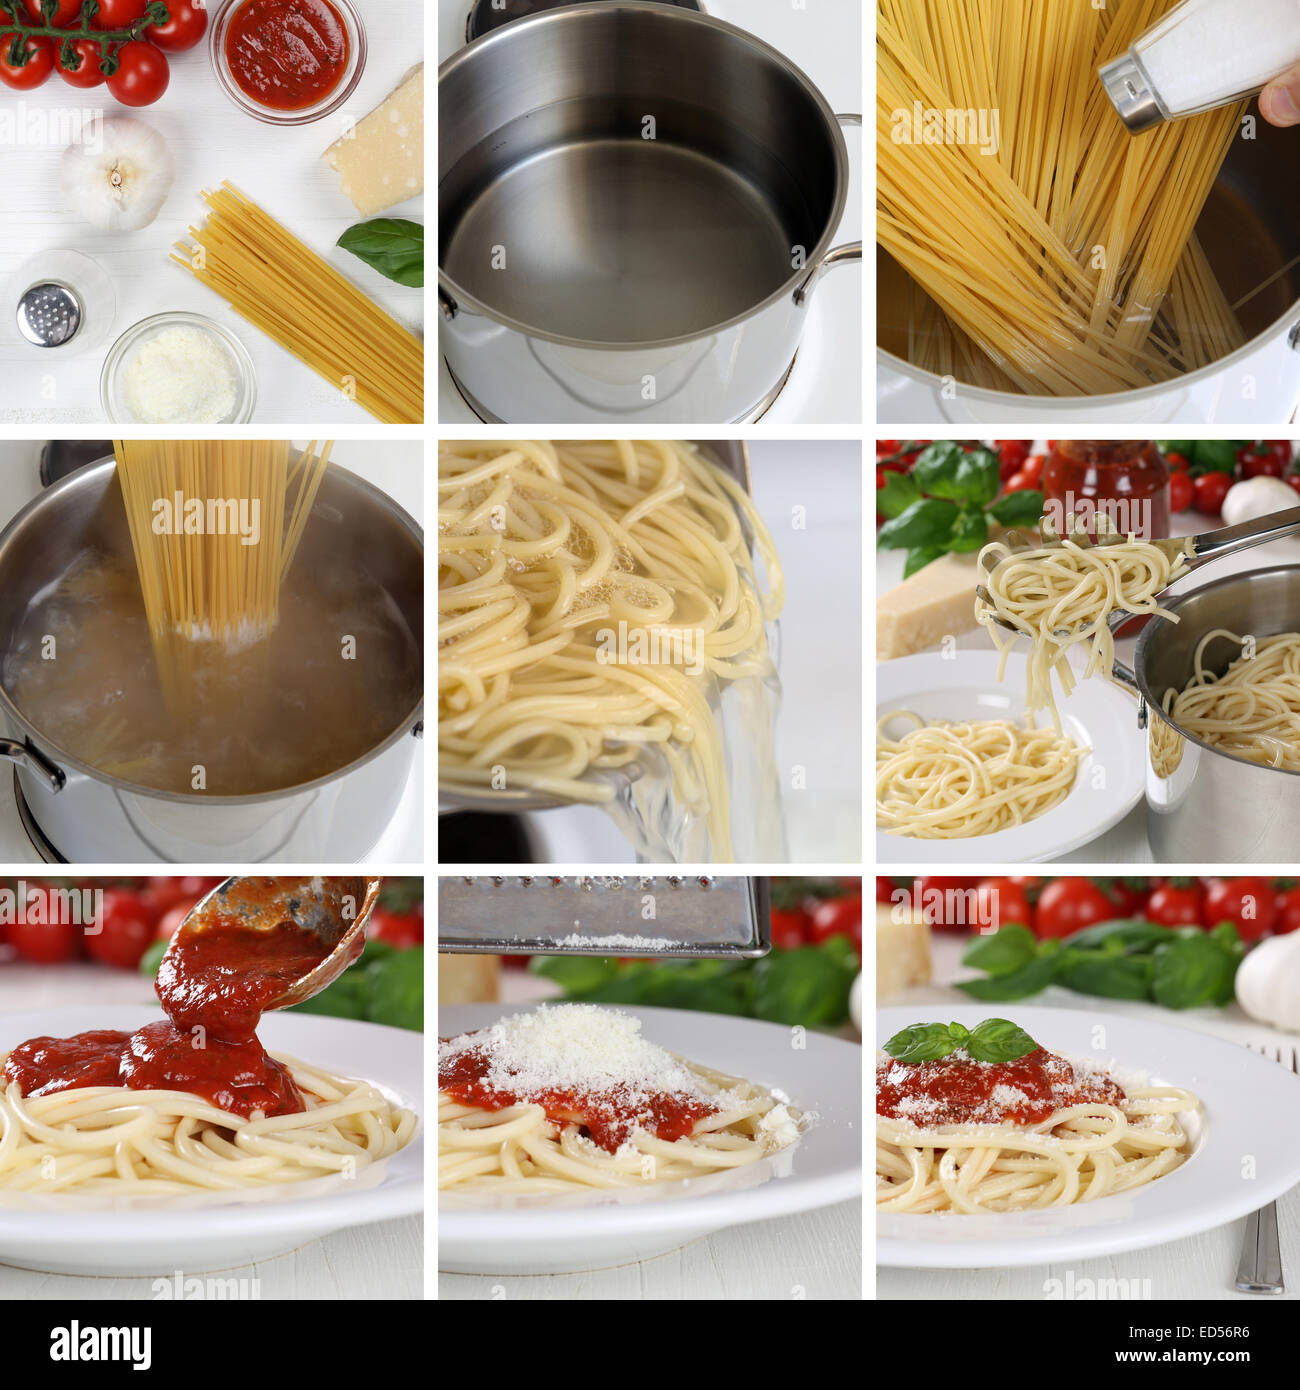 Cooking Spaghetti Noodles Pasta Food With Tomato Sauce And Basil Step Stock Photo Alamy